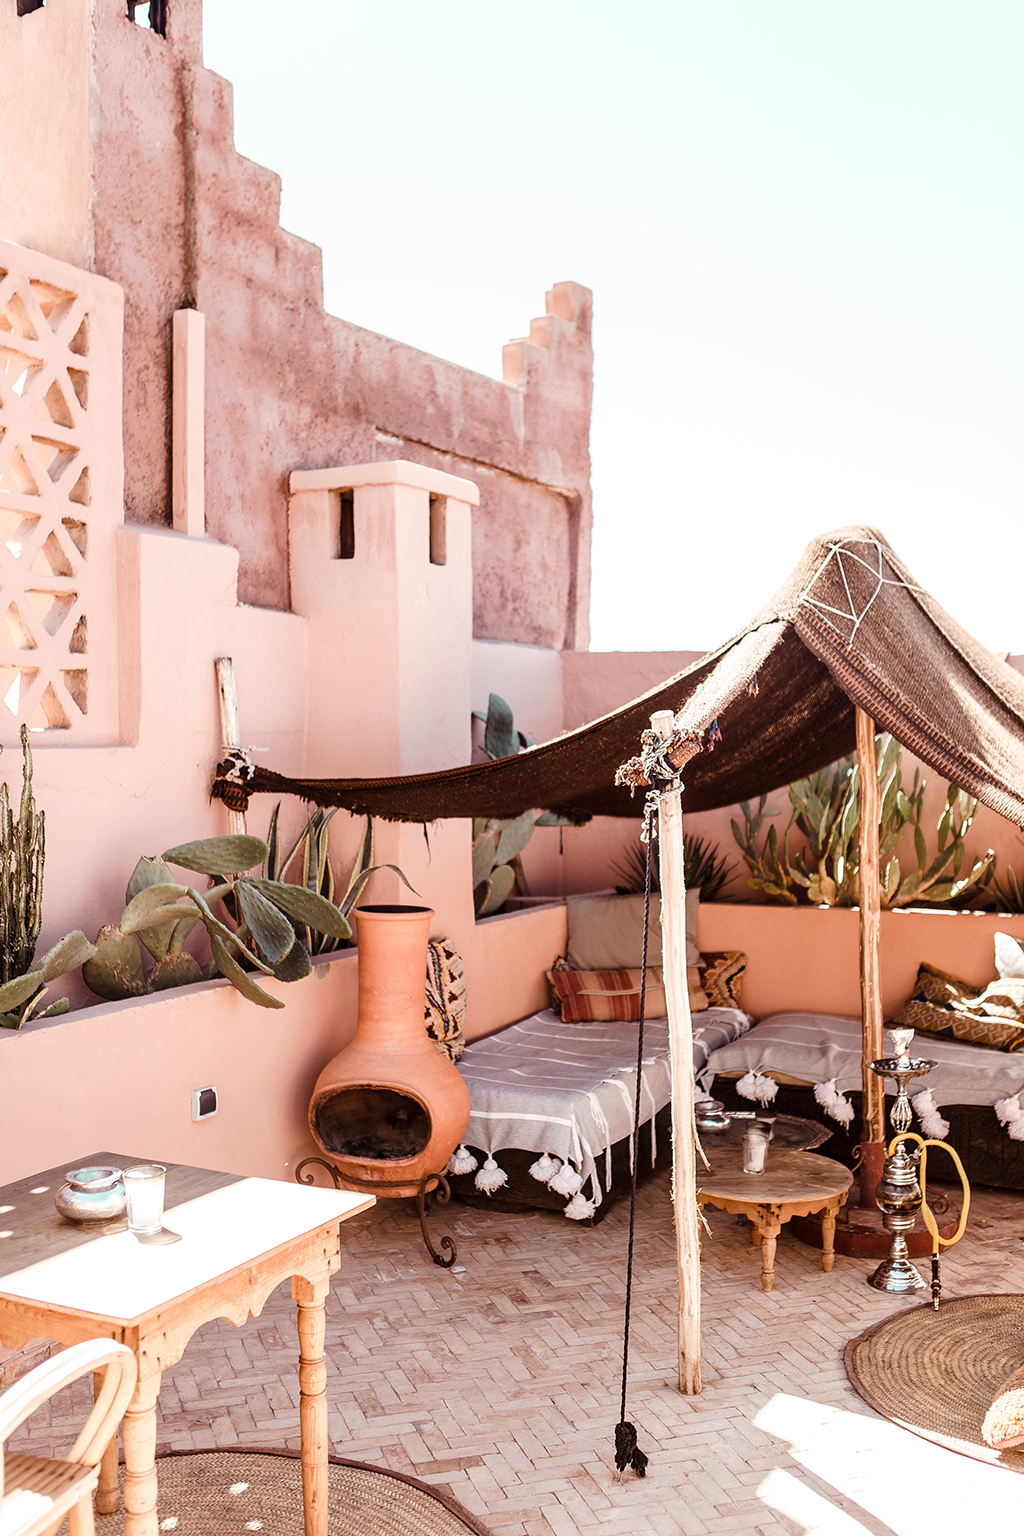 elena-engels-fotografie-marrakech-blogger-travel-reise-shooting260